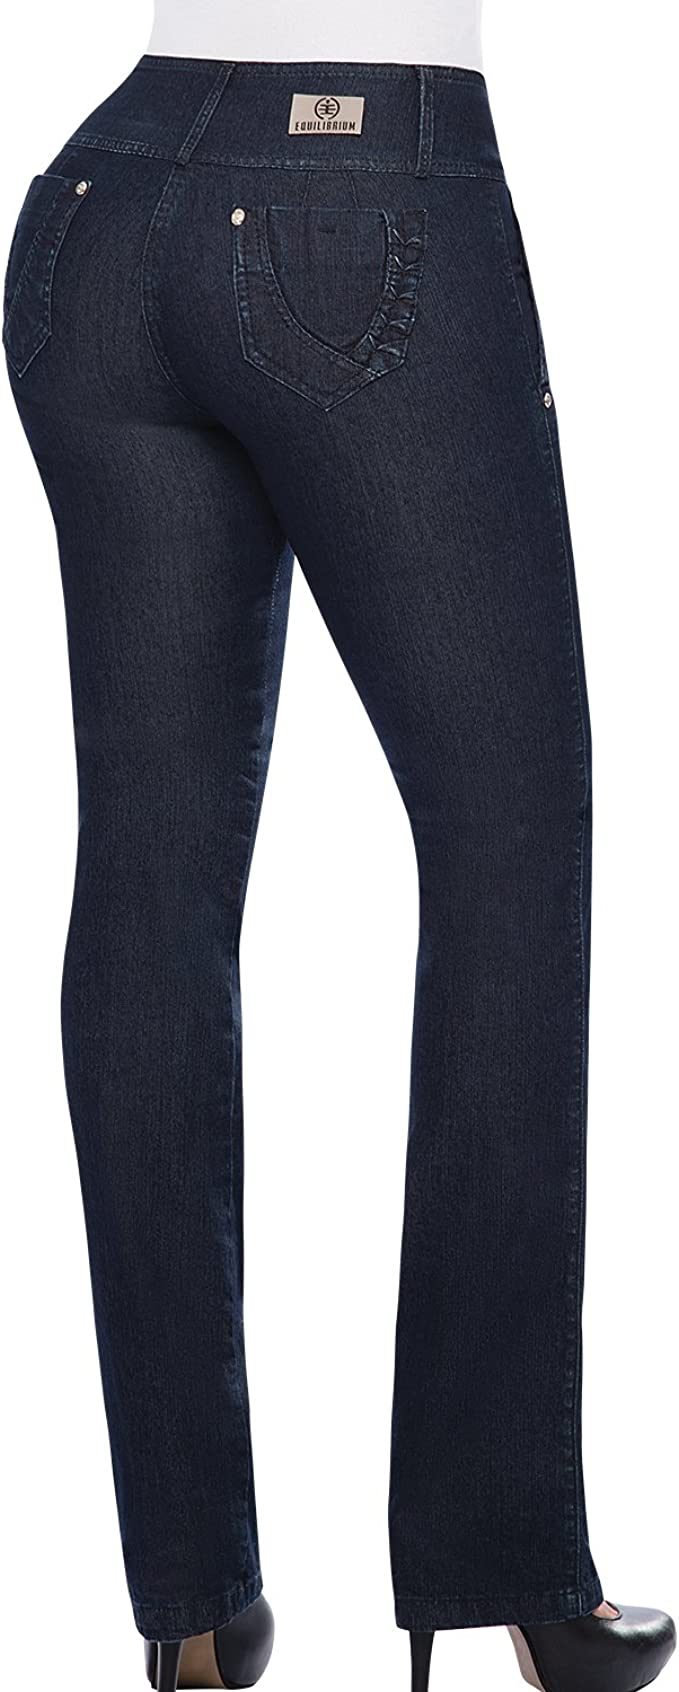 Equilibrium 100/% Colombian Boot Cut Jean for Women Mid-Rise Stretch Jean J8616